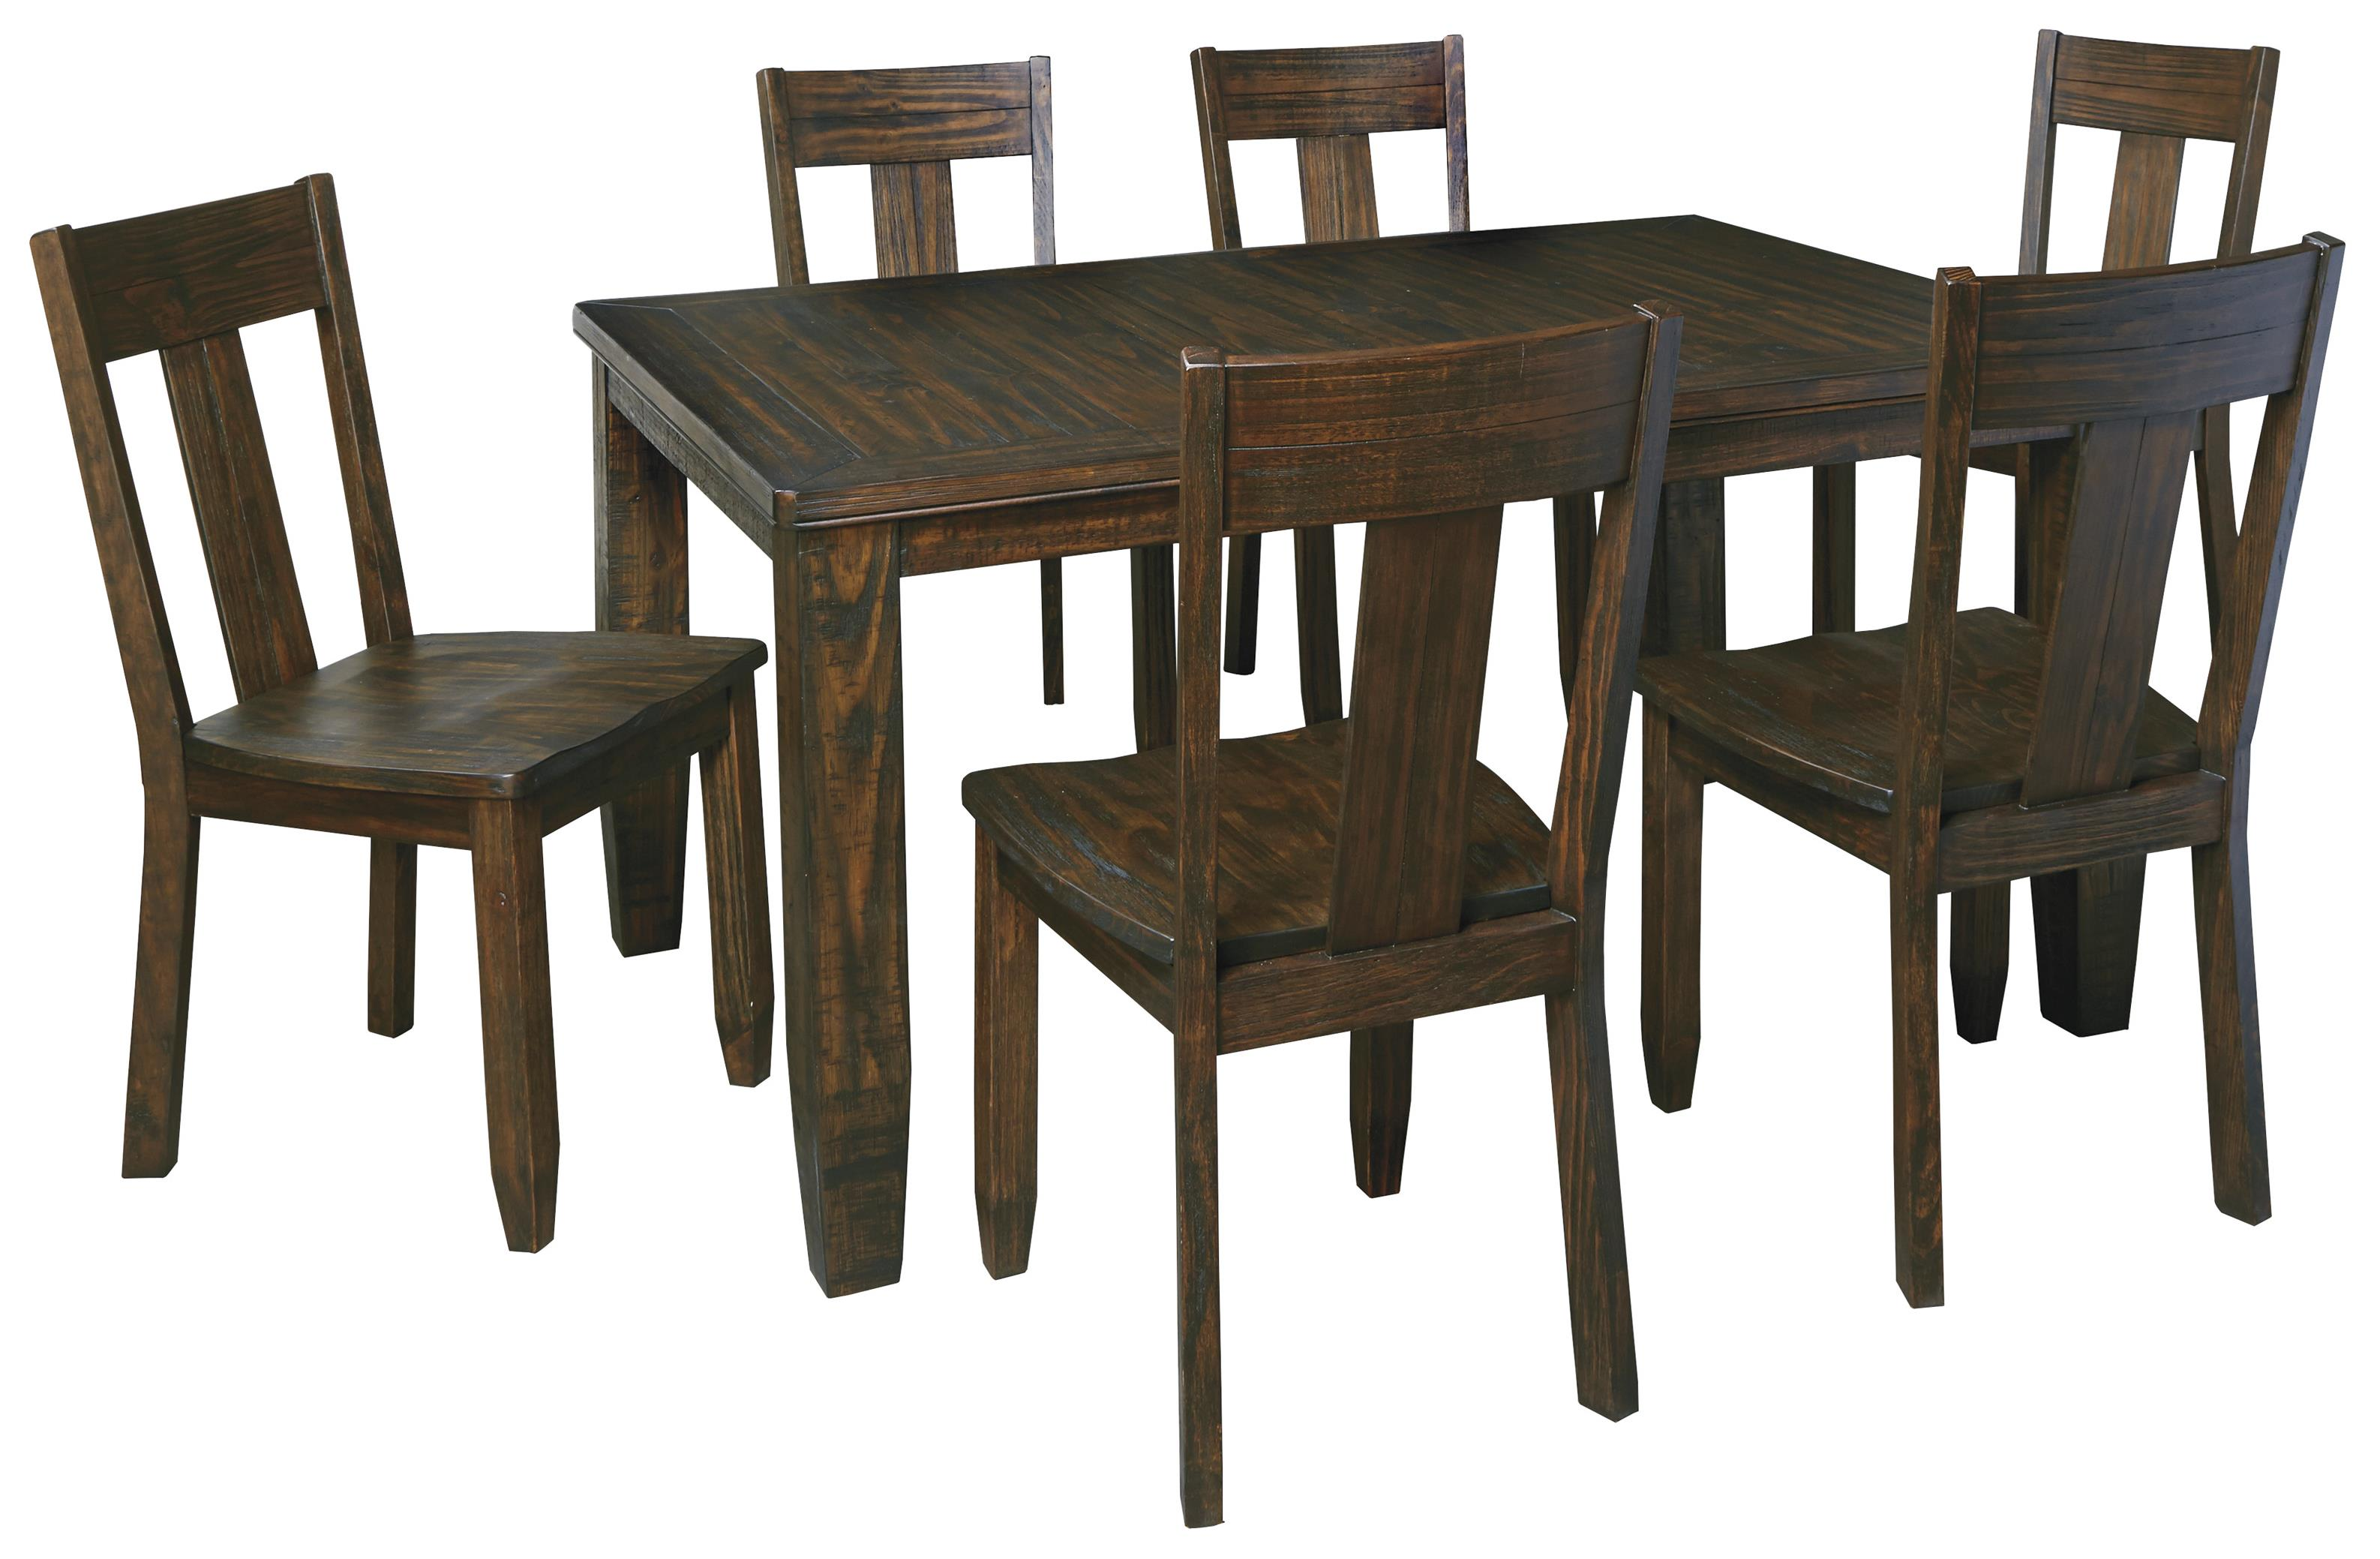 Signature Design by Ashley Trudell 7-Piece Rectangular Dining Table Set - Item Number: D658-35+6x01